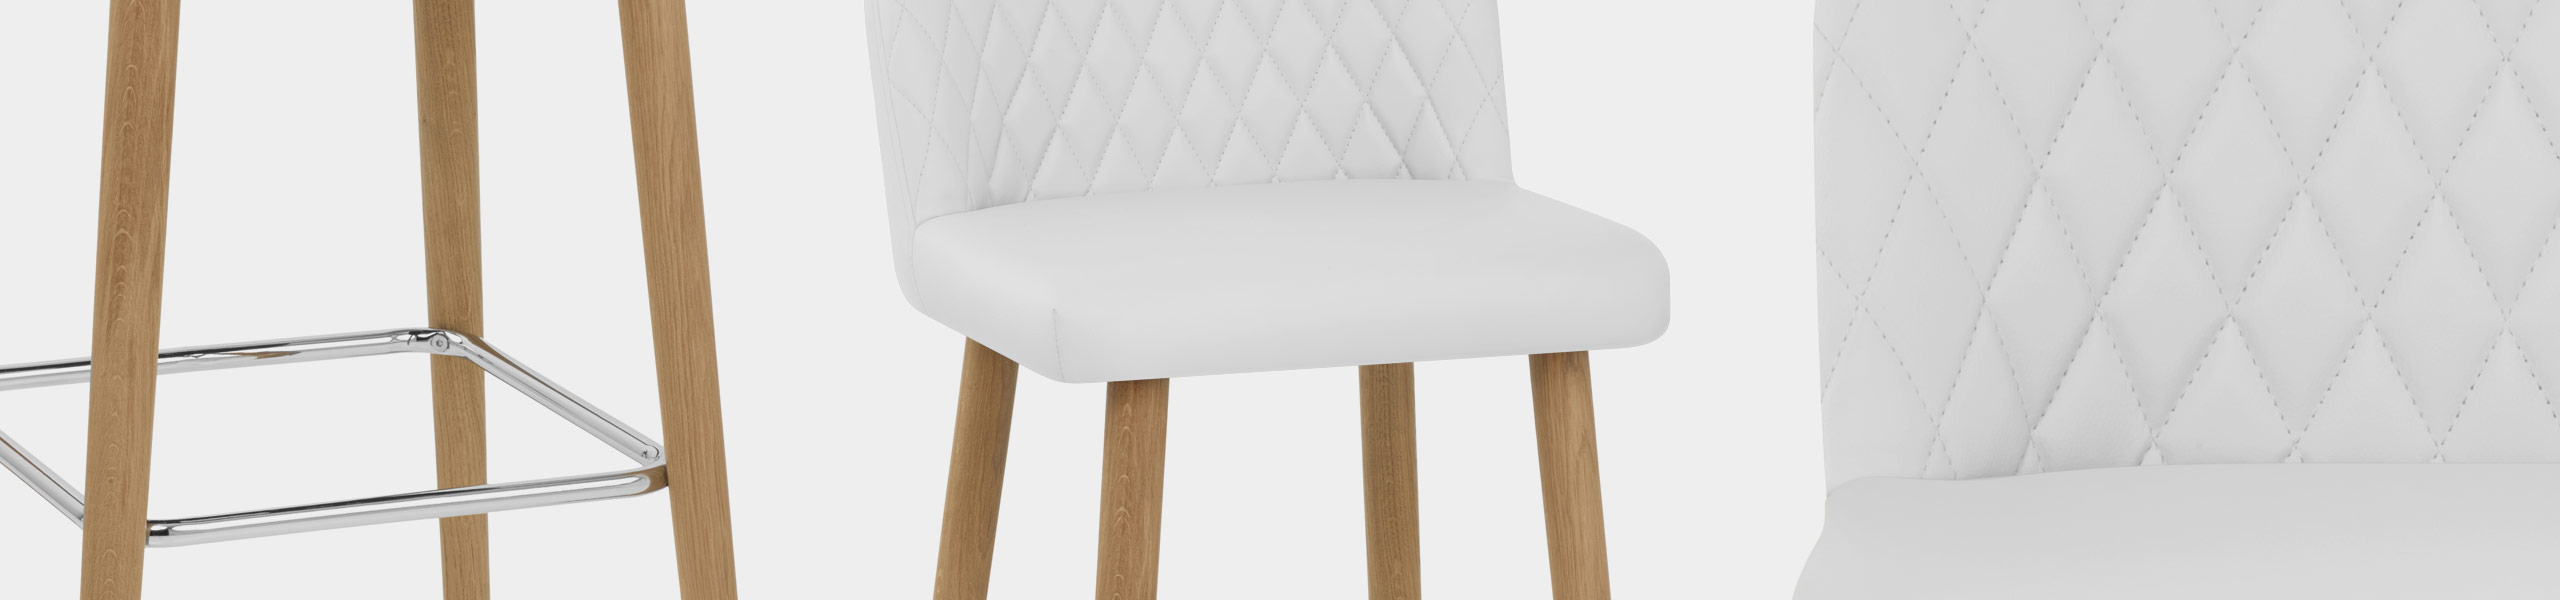 Pacific Wooden Stool White Video Banner